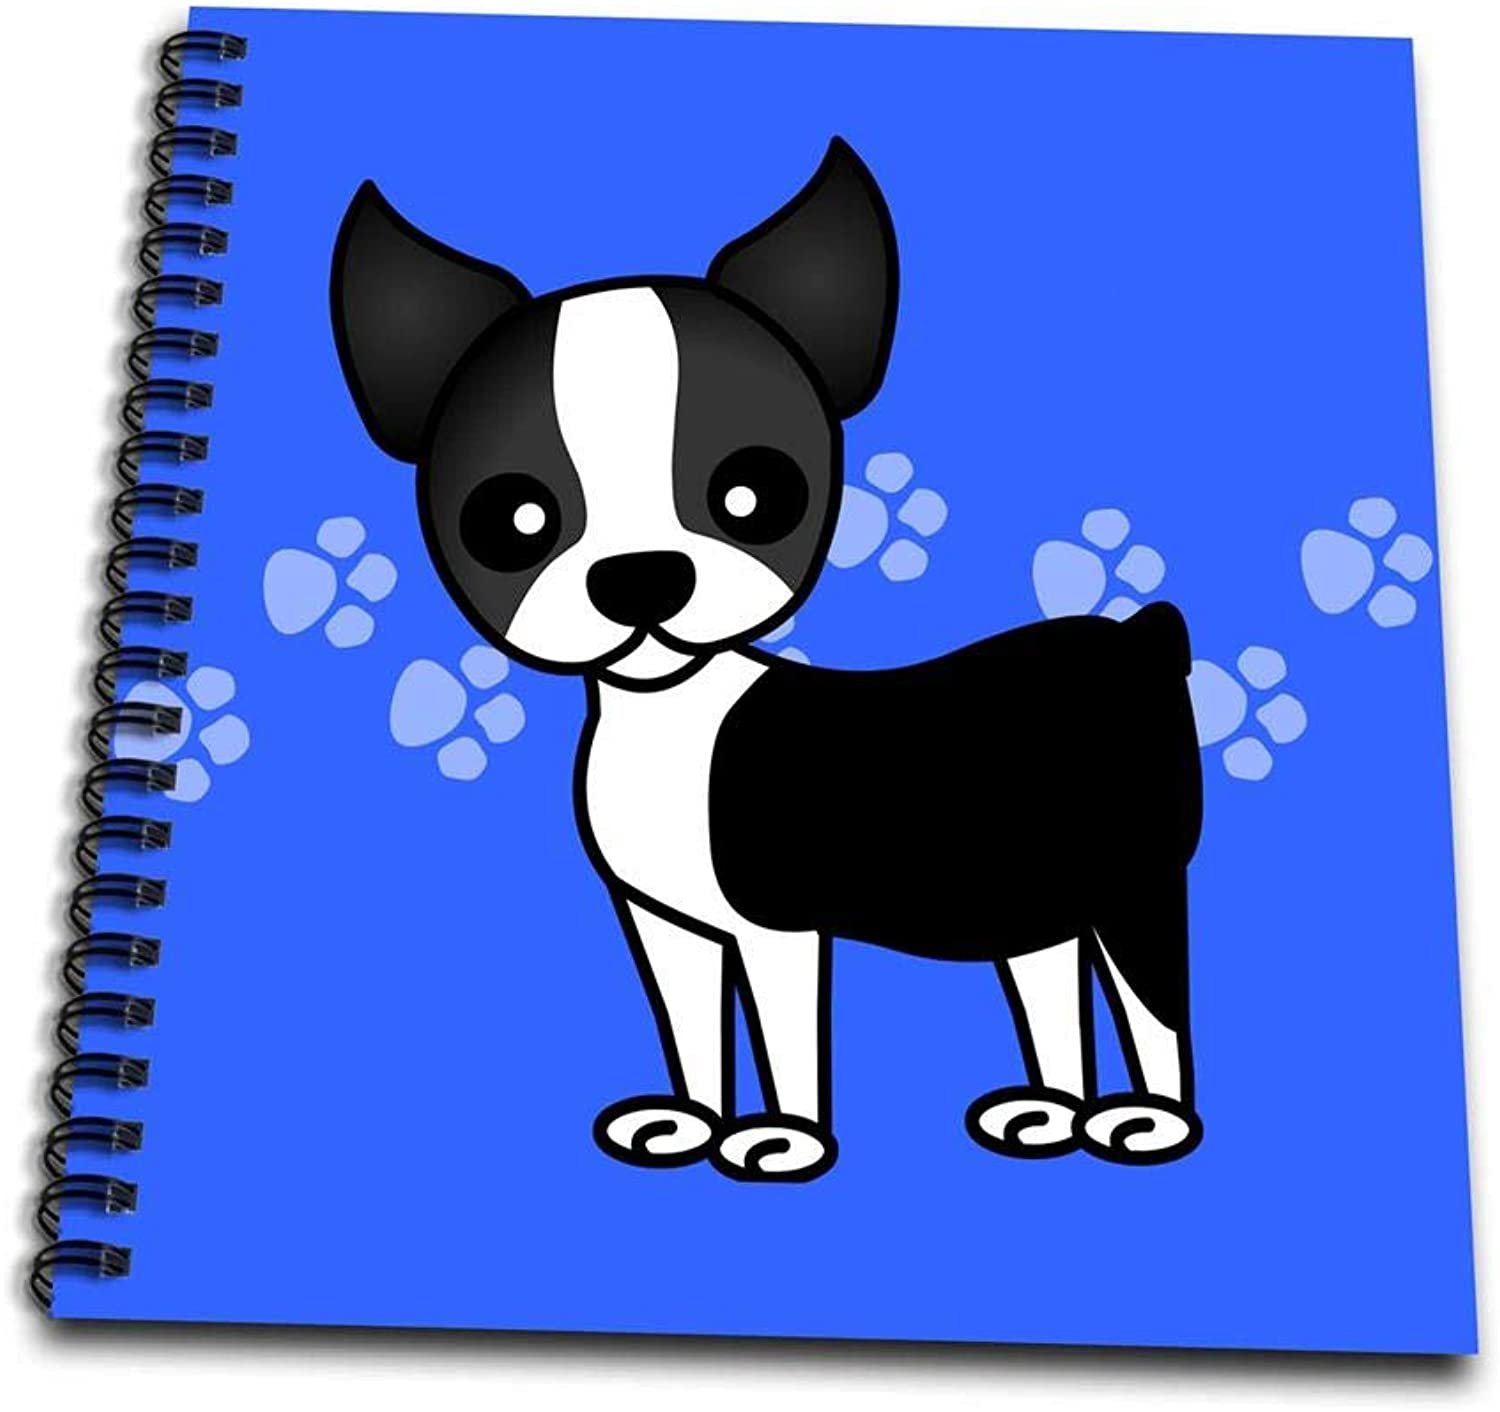 3dpink Cute Boston Terrier bluee Pawprint BackgroundDrawing Book, 8 by 8  (db_12085_1)